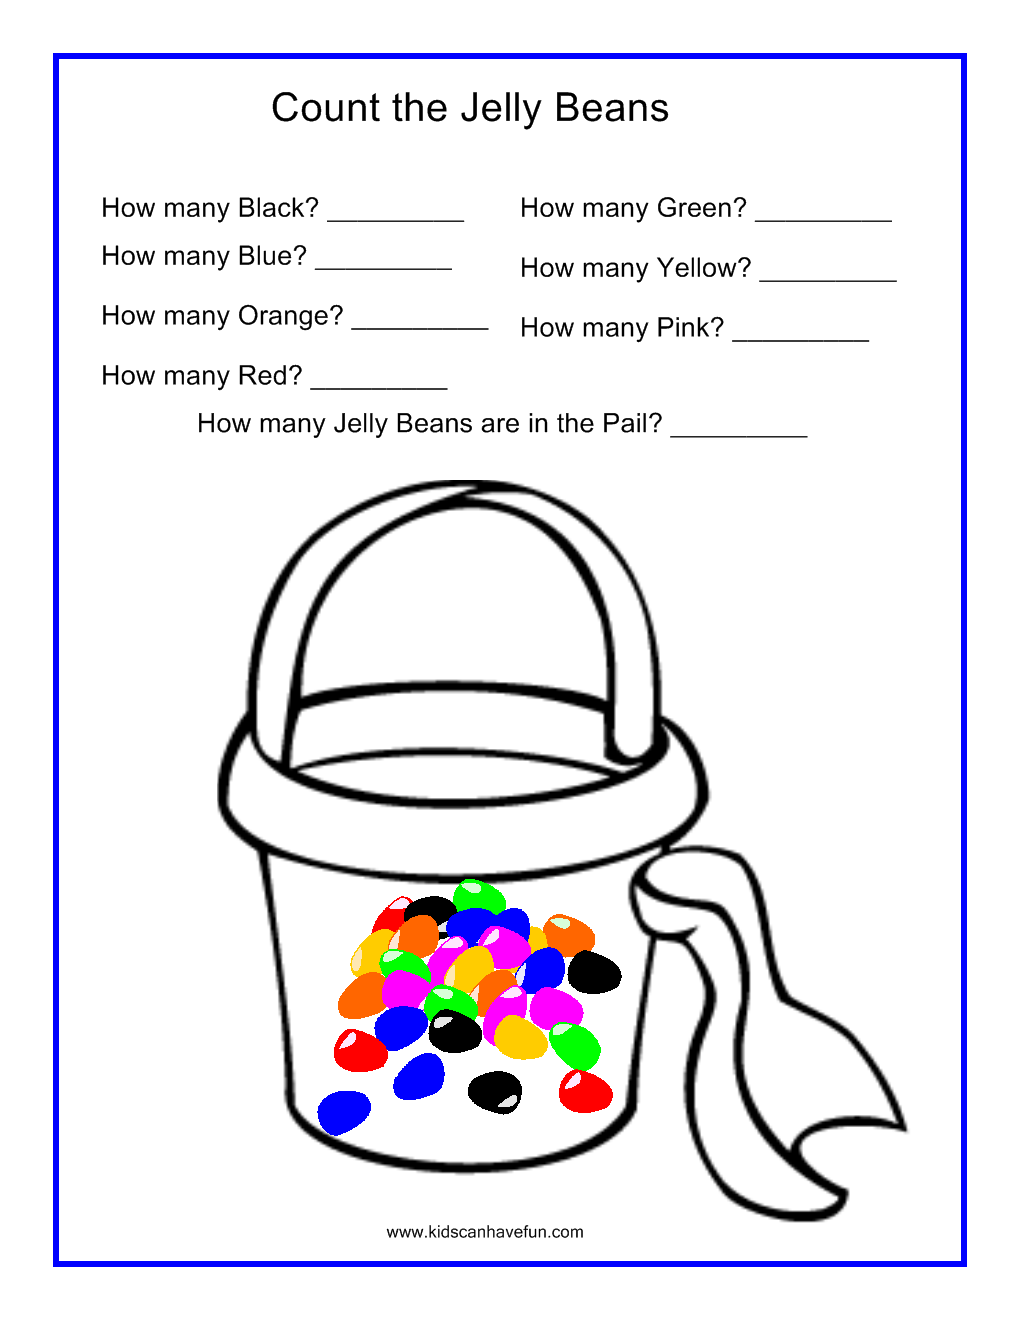 Count The Jelly Beans In The Sand Pail Worksheet Free Math Worksheets Math Worksheets Kids Math Worksheets [ 1319 x 1019 Pixel ]